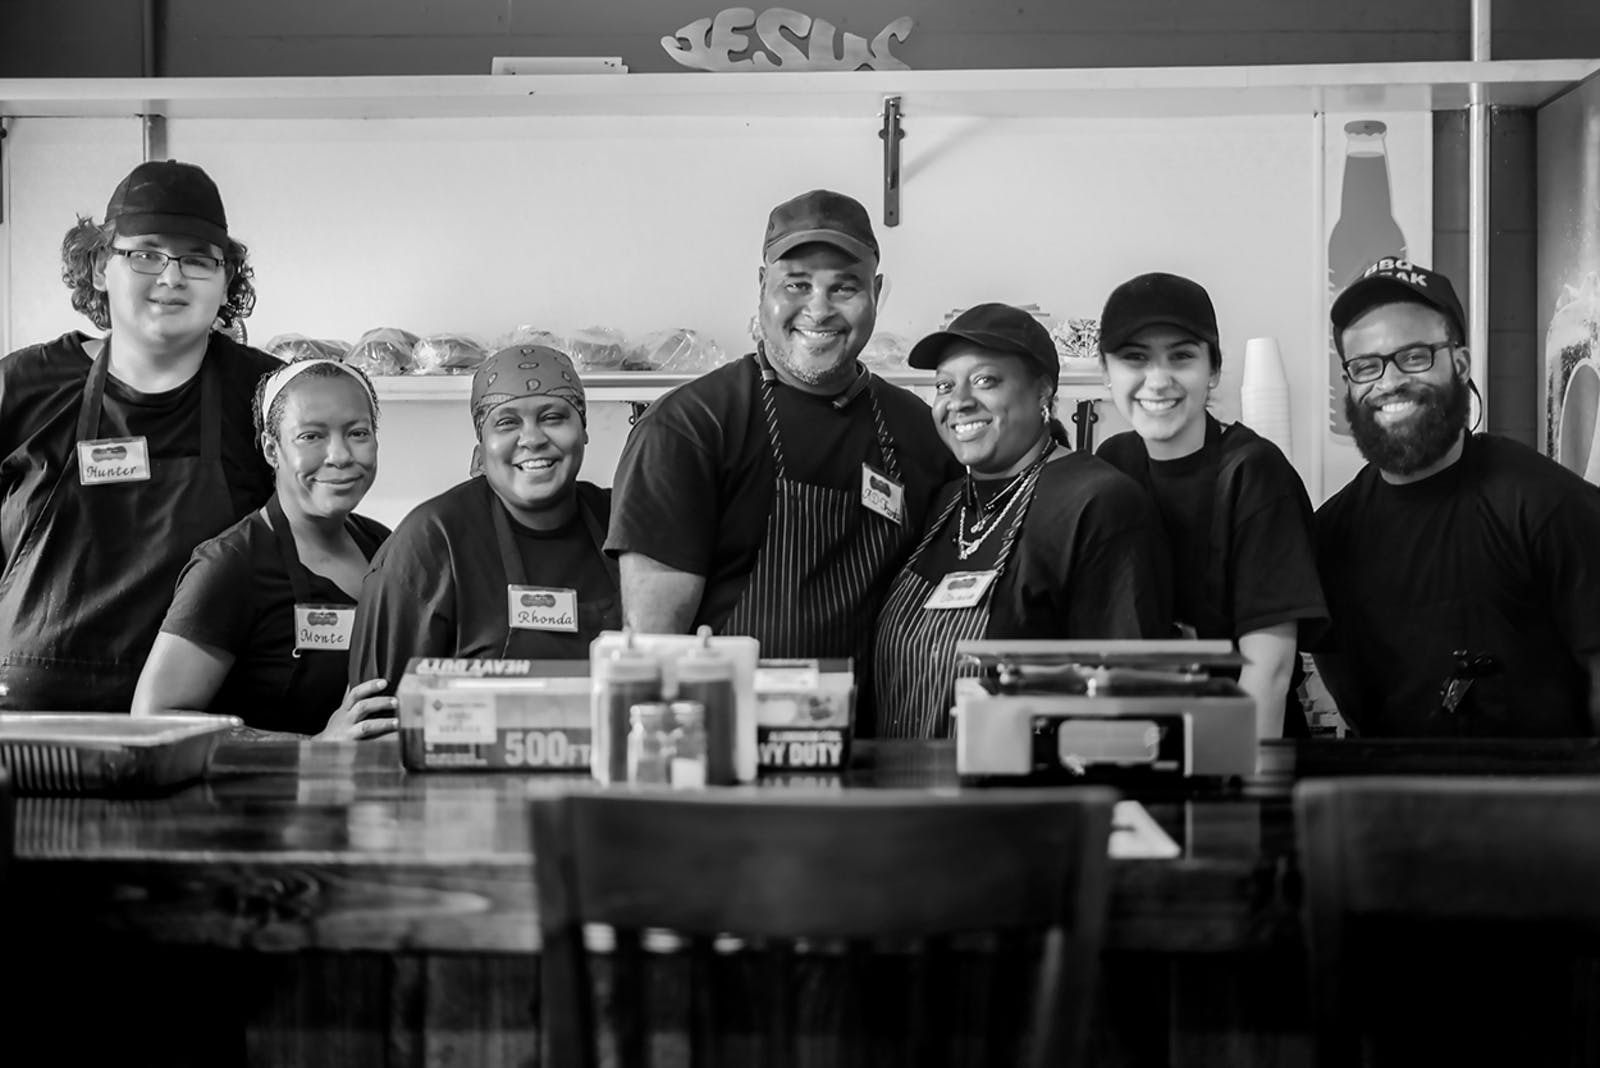 Owner and pitmaster Abraham Franks (center) with his wife Tonia (center right), daughter Rhonda (center left) and the rest of the Franks Holy Smoke BBQ team.